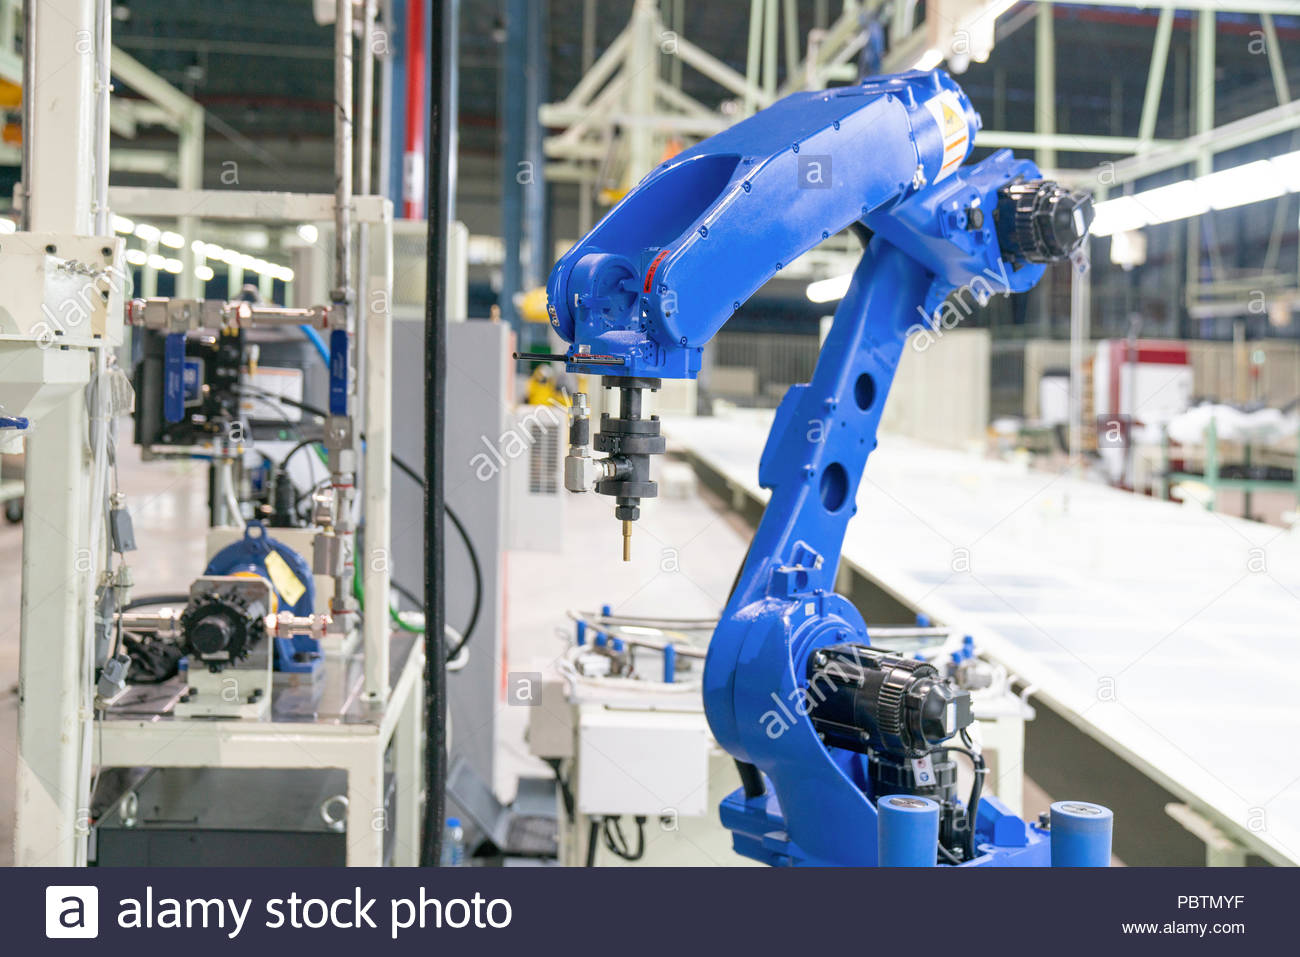 robotic hand machine tool at industrial manufacture factory - Stock Image